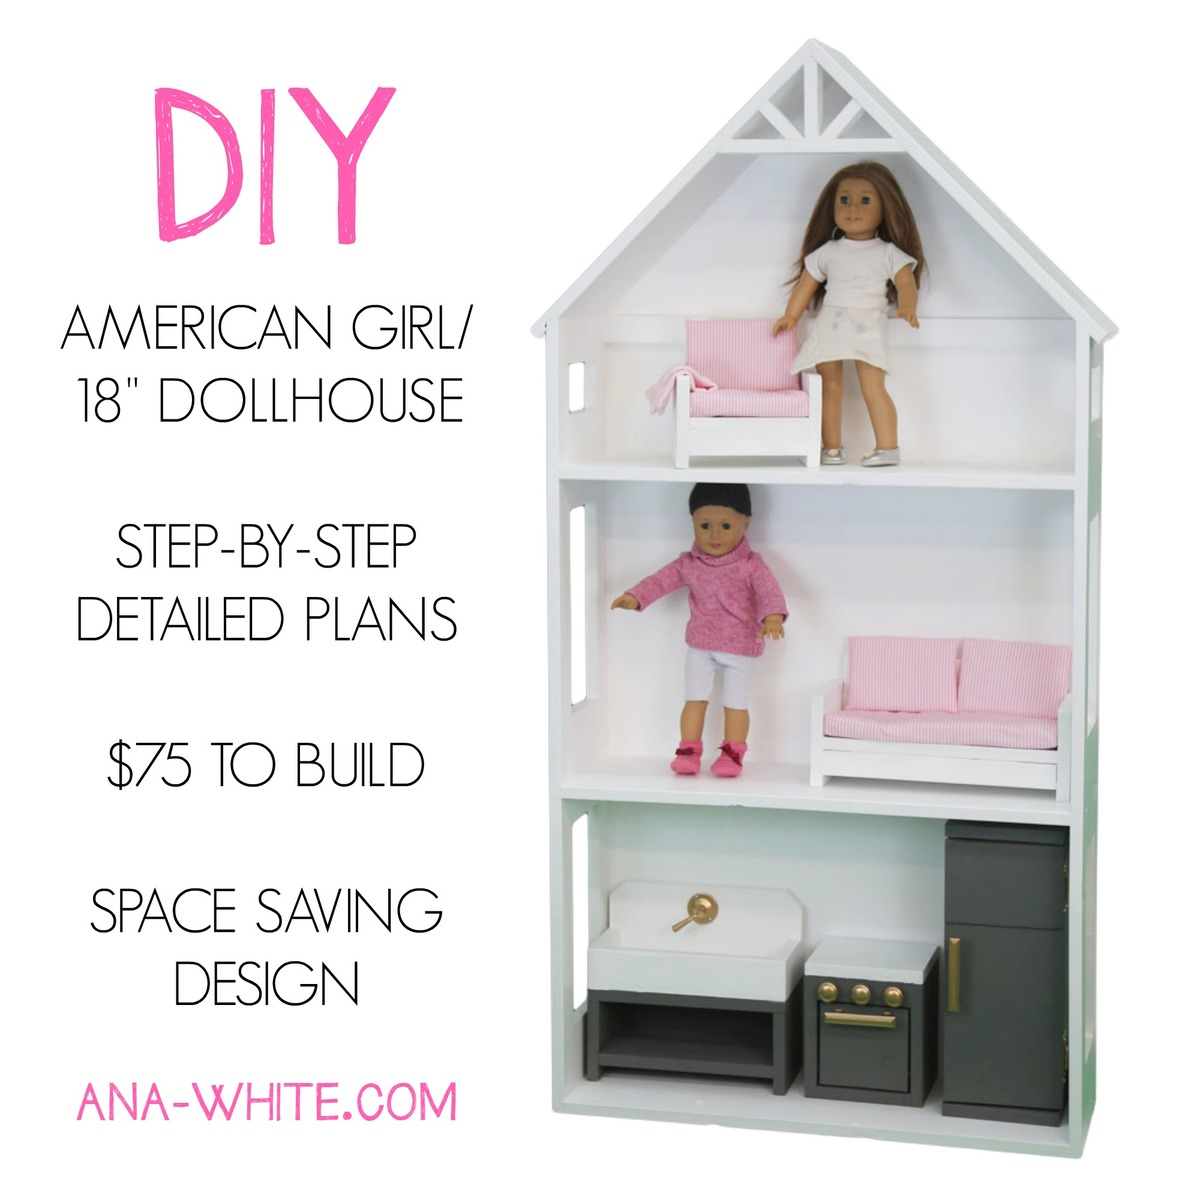 Ana White | Smaller Three Story Dollhouse for 18"|1200|1200|?|4f1317ab423b8a5abf7e22a0adb86e97|False|UNLIKELY|0.3975709080696106